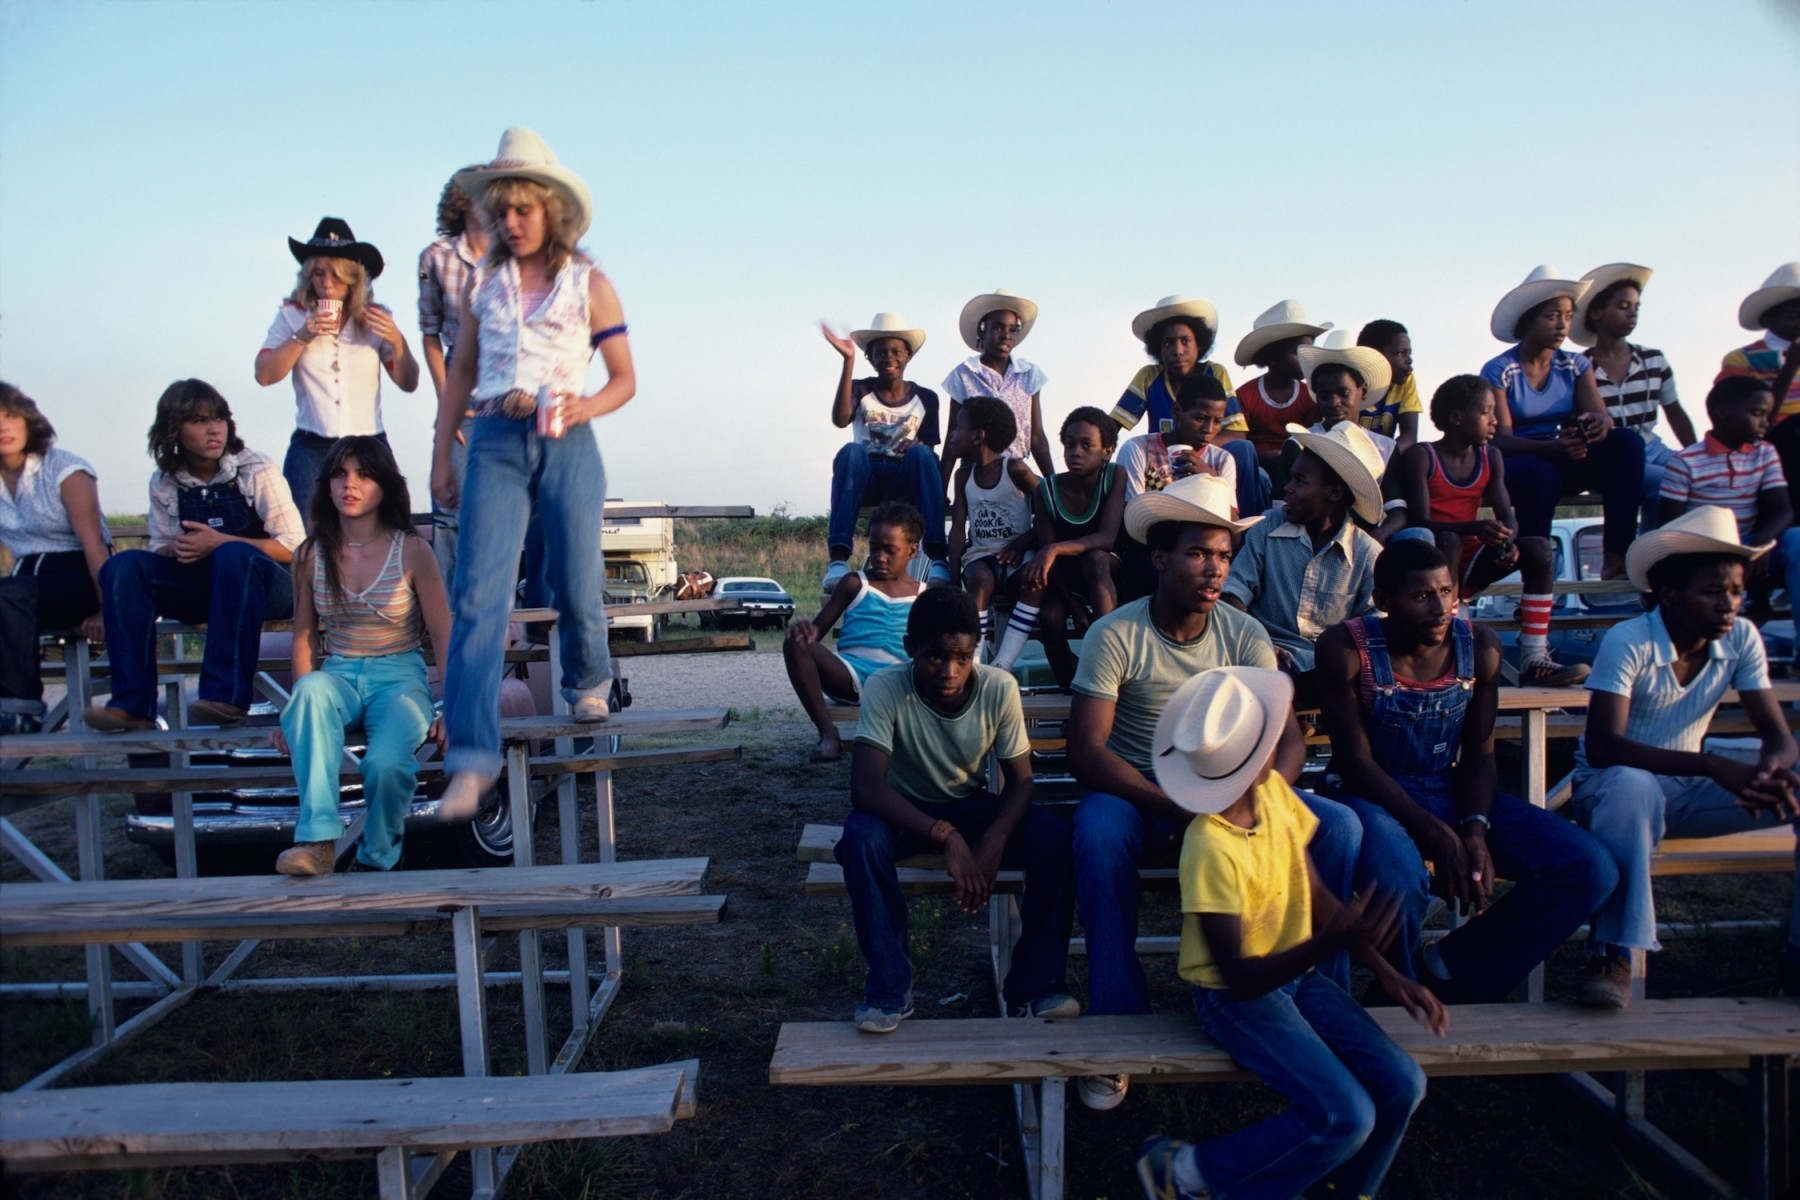 Blacks and Whites at a Rodeo, 1980